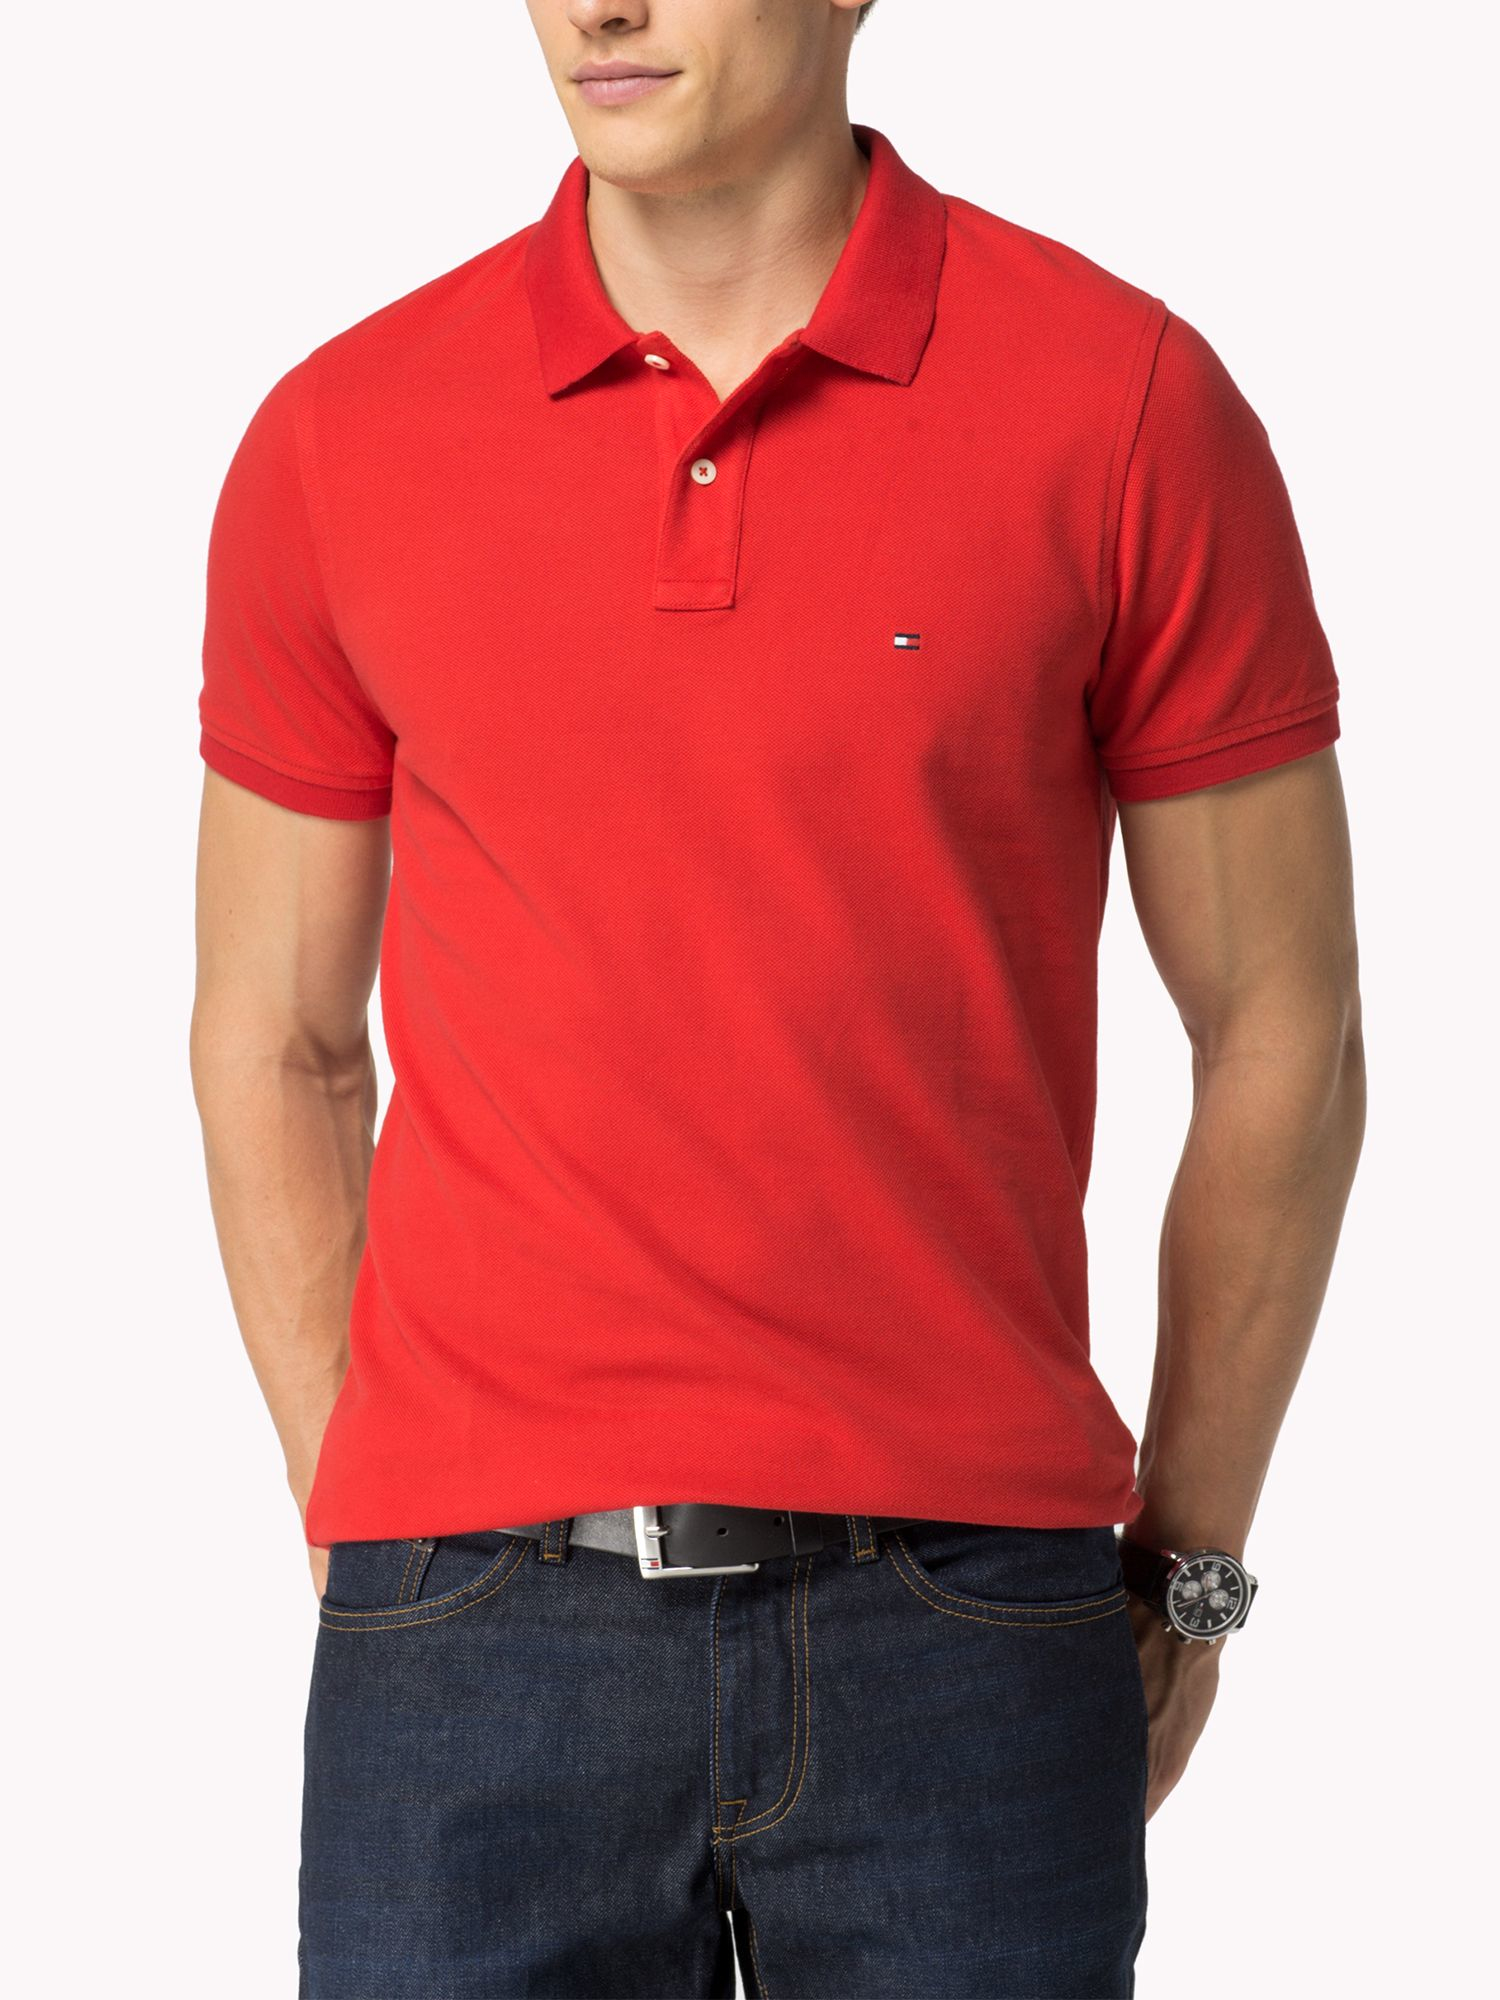 tommy hilfiger slim fit short sleeve polo shirt in red for men lyst. Black Bedroom Furniture Sets. Home Design Ideas